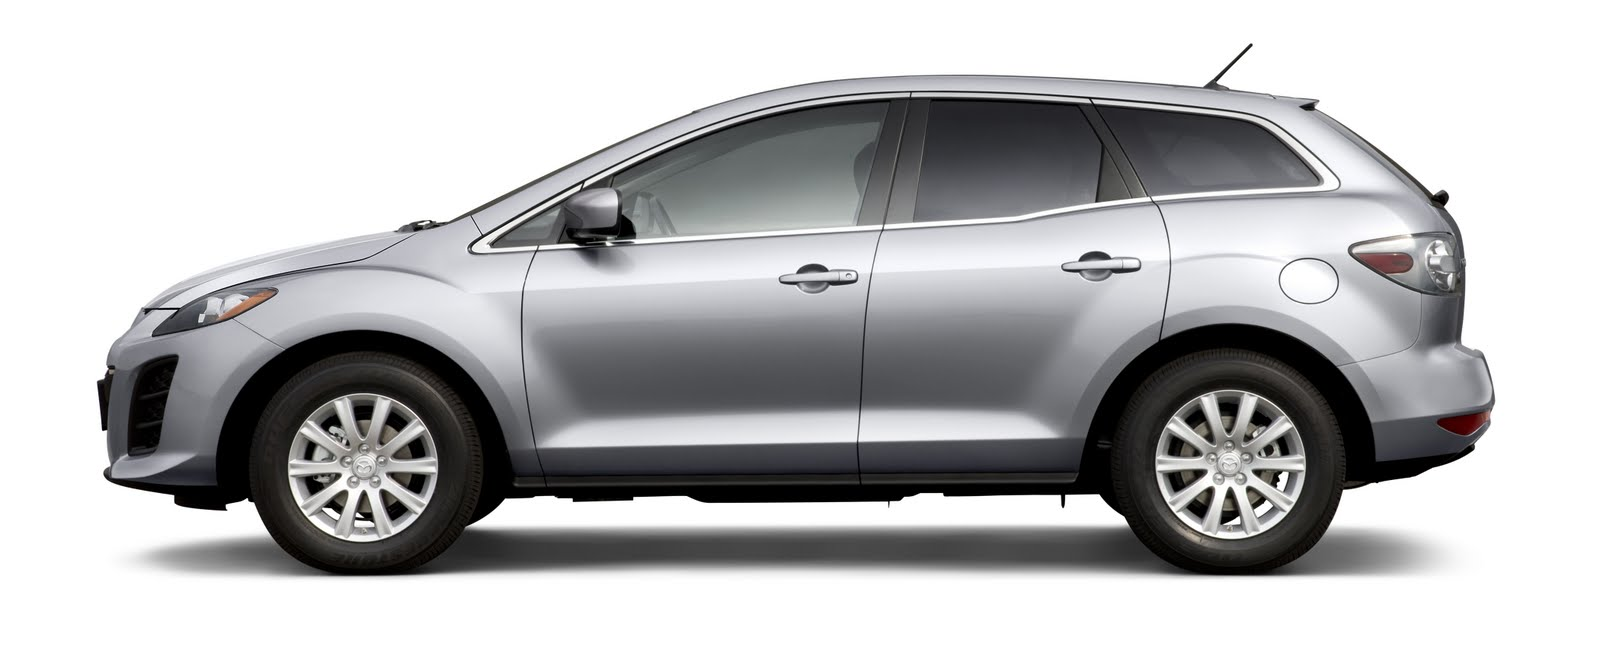 The Mazda CX-7 Classic - a justifiably popular choice of family vehicle.